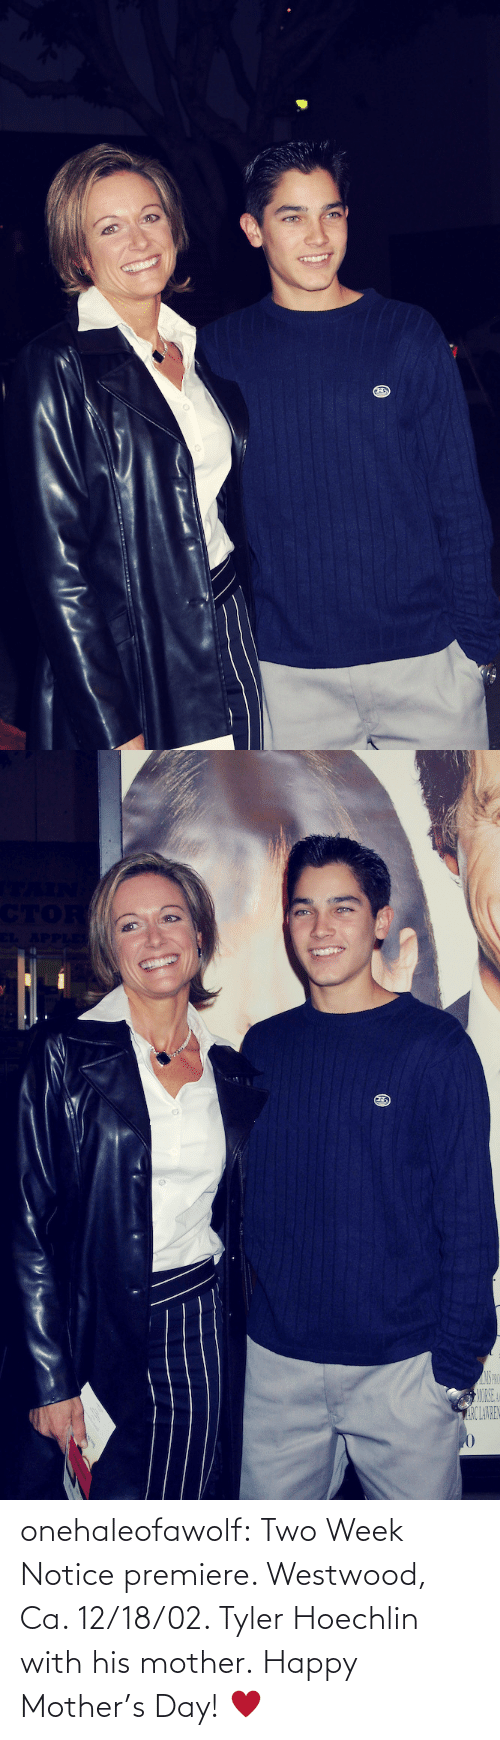 tyler hoechlin: TAIN  CTOR  CL APPLE  MORSE A  ARCLAWREN onehaleofawolf:  Two Week Notice premiere. Westwood, Ca. 12/18/02. Tyler Hoechlin with his mother. Happy Mother's Day! ♥